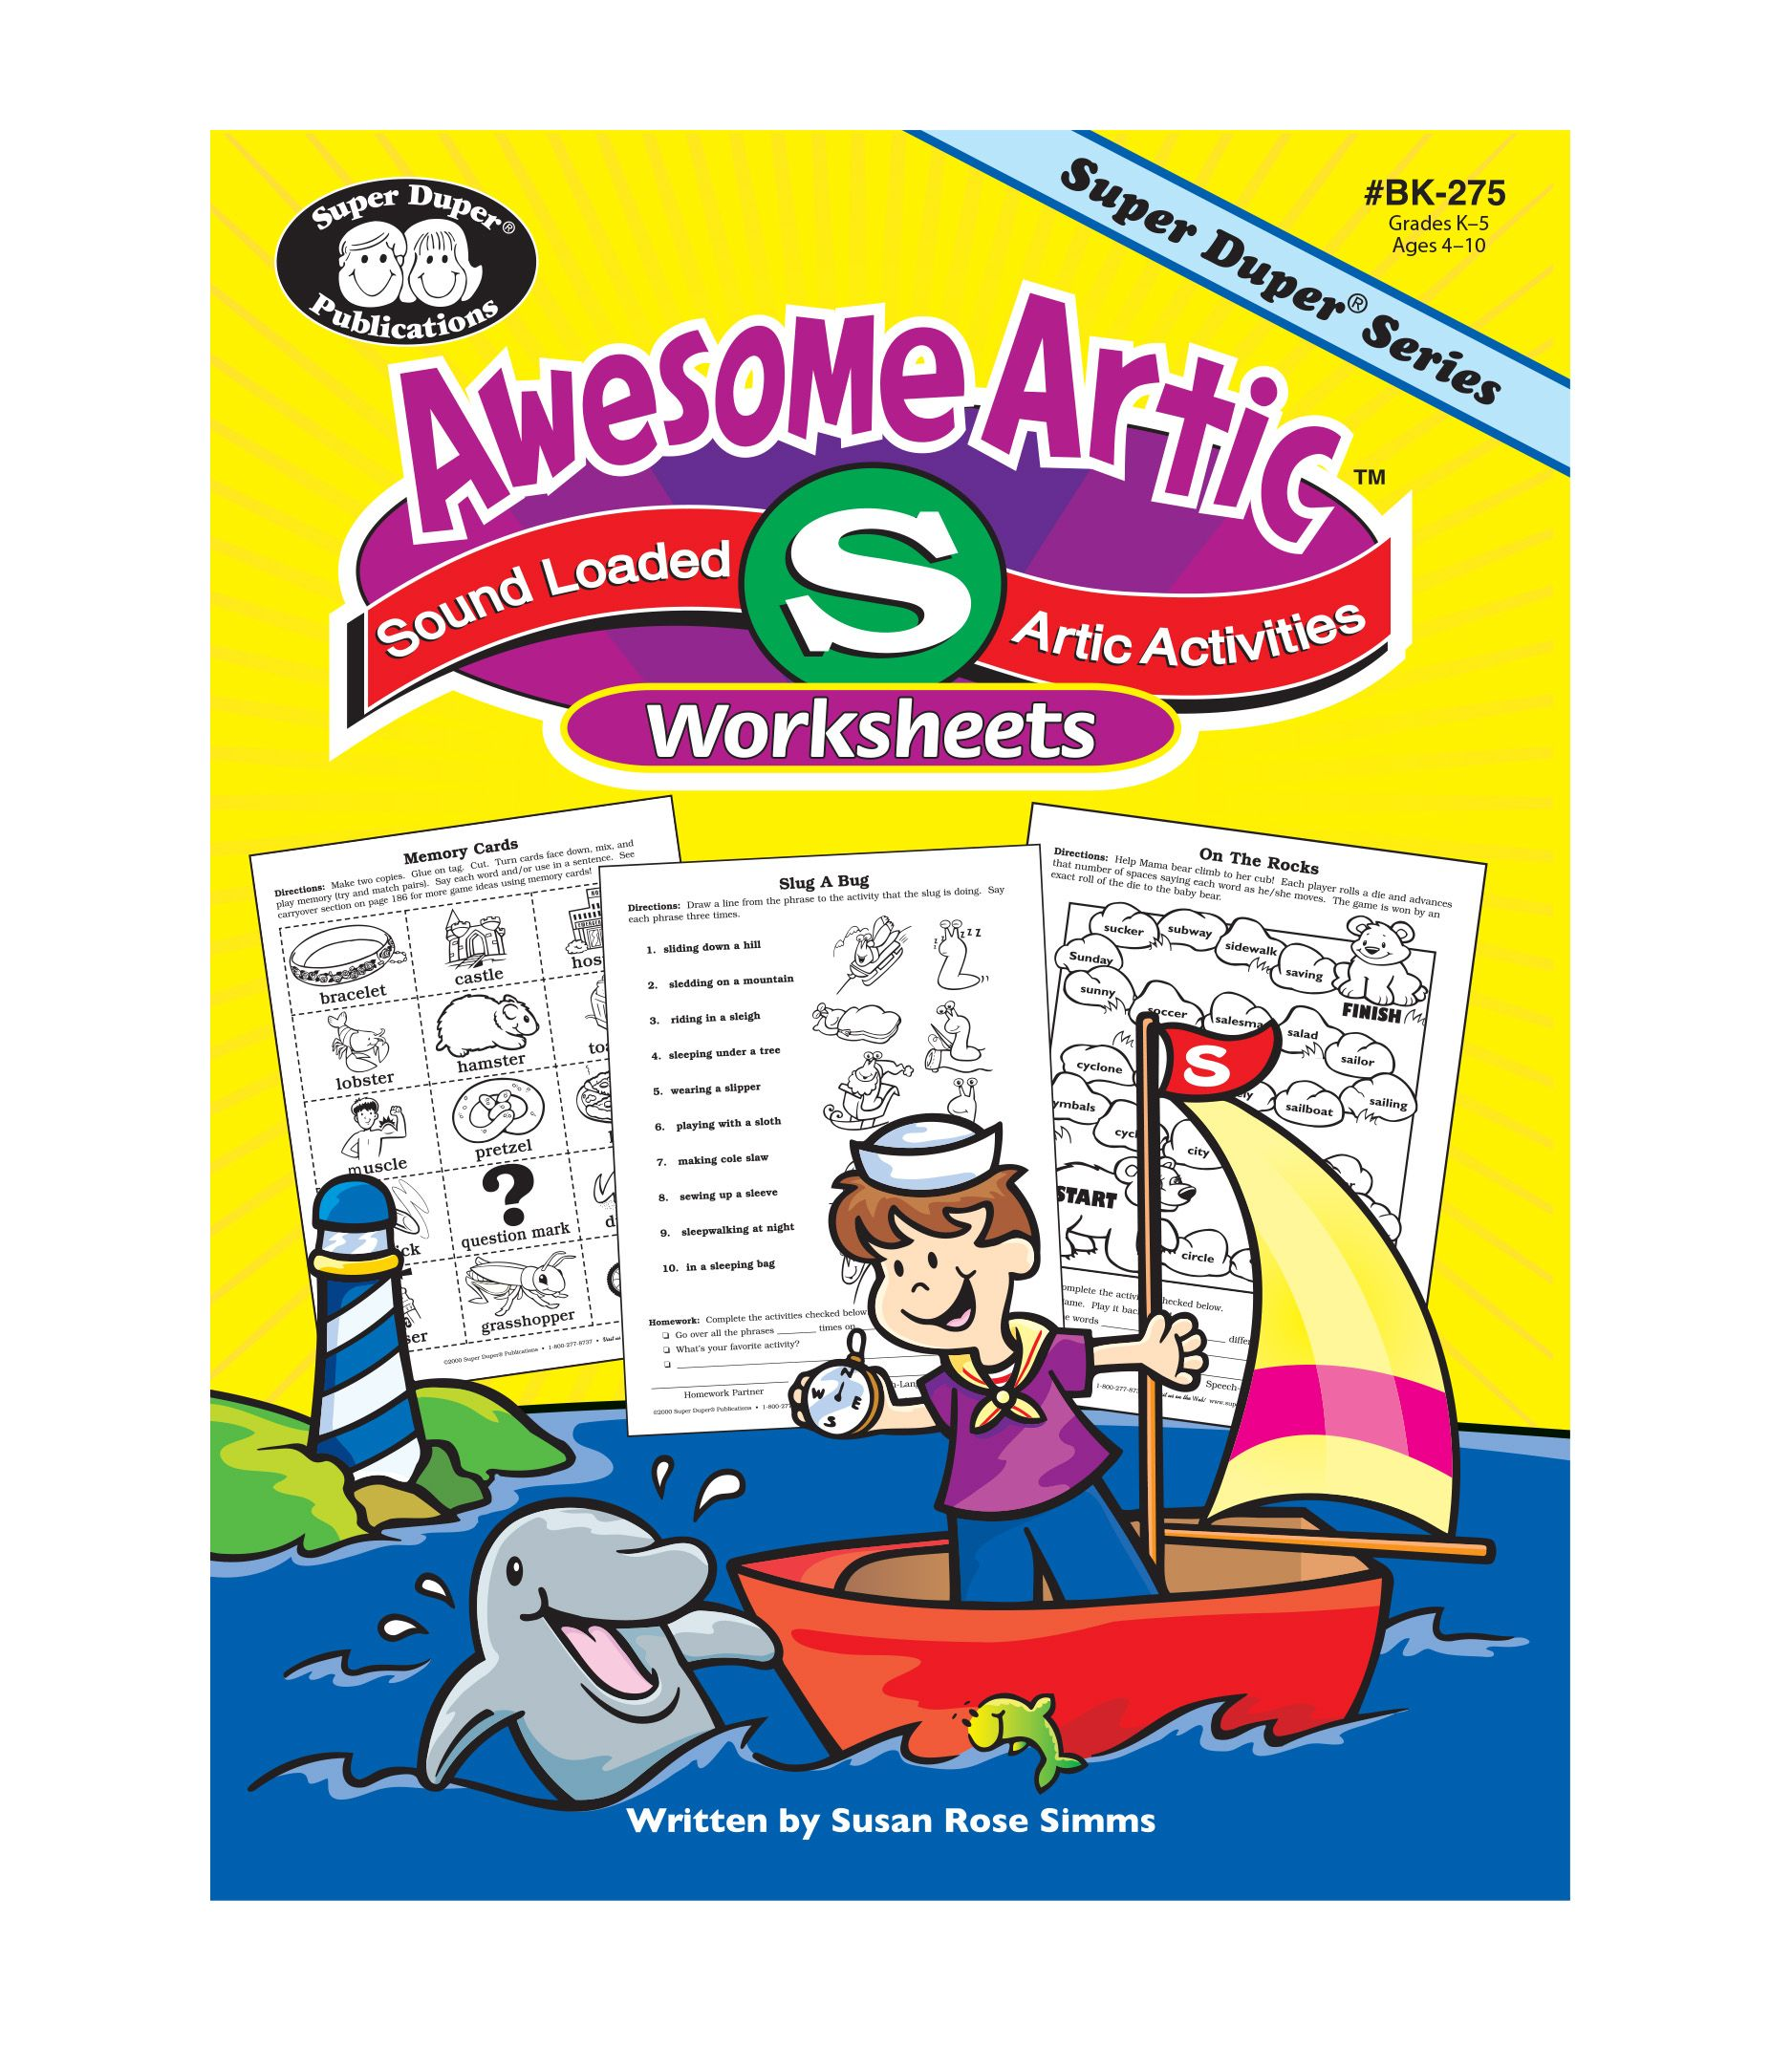 Awesome Articulation S Worksheets